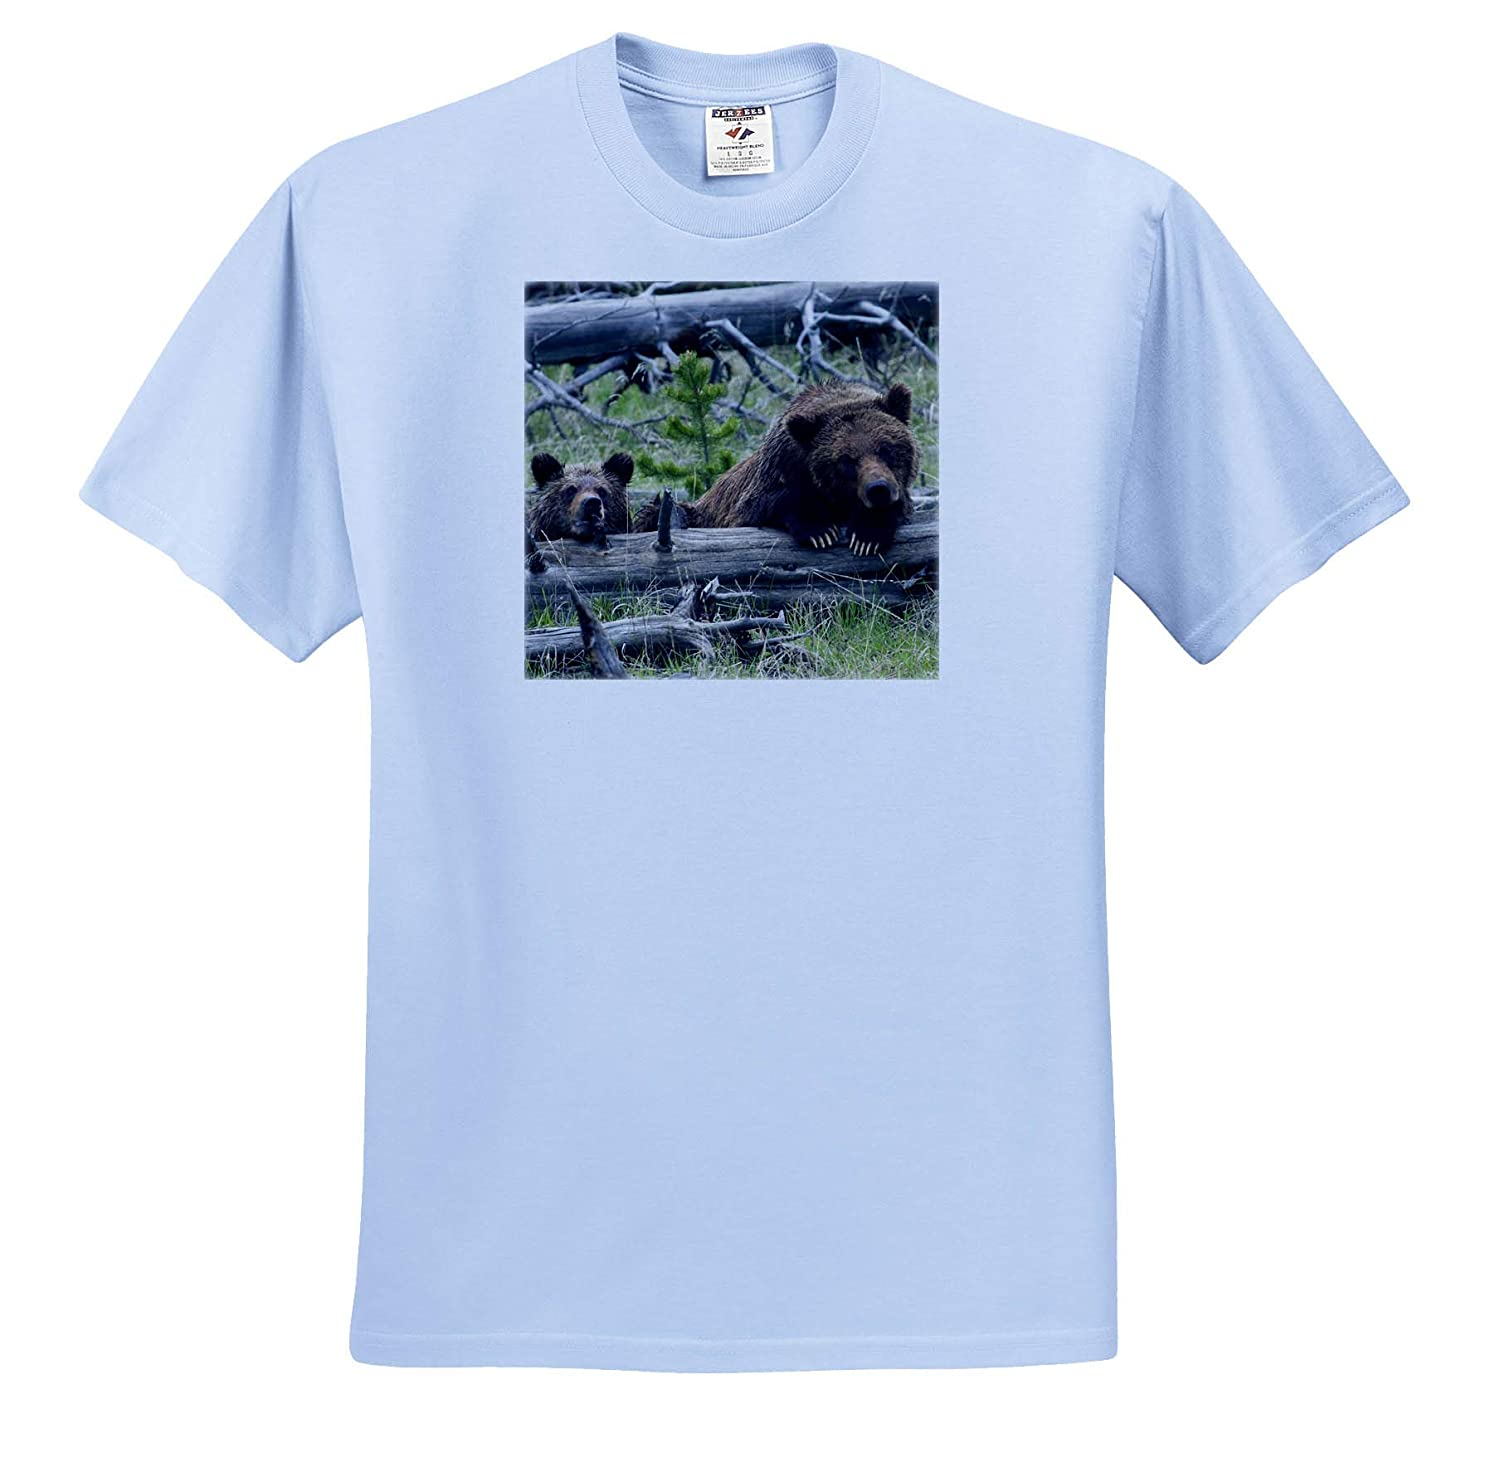 Grizzly Bear Sow and Cub ts/_313990 Adult T-Shirt XL Bears 3dRose Danita Delimont